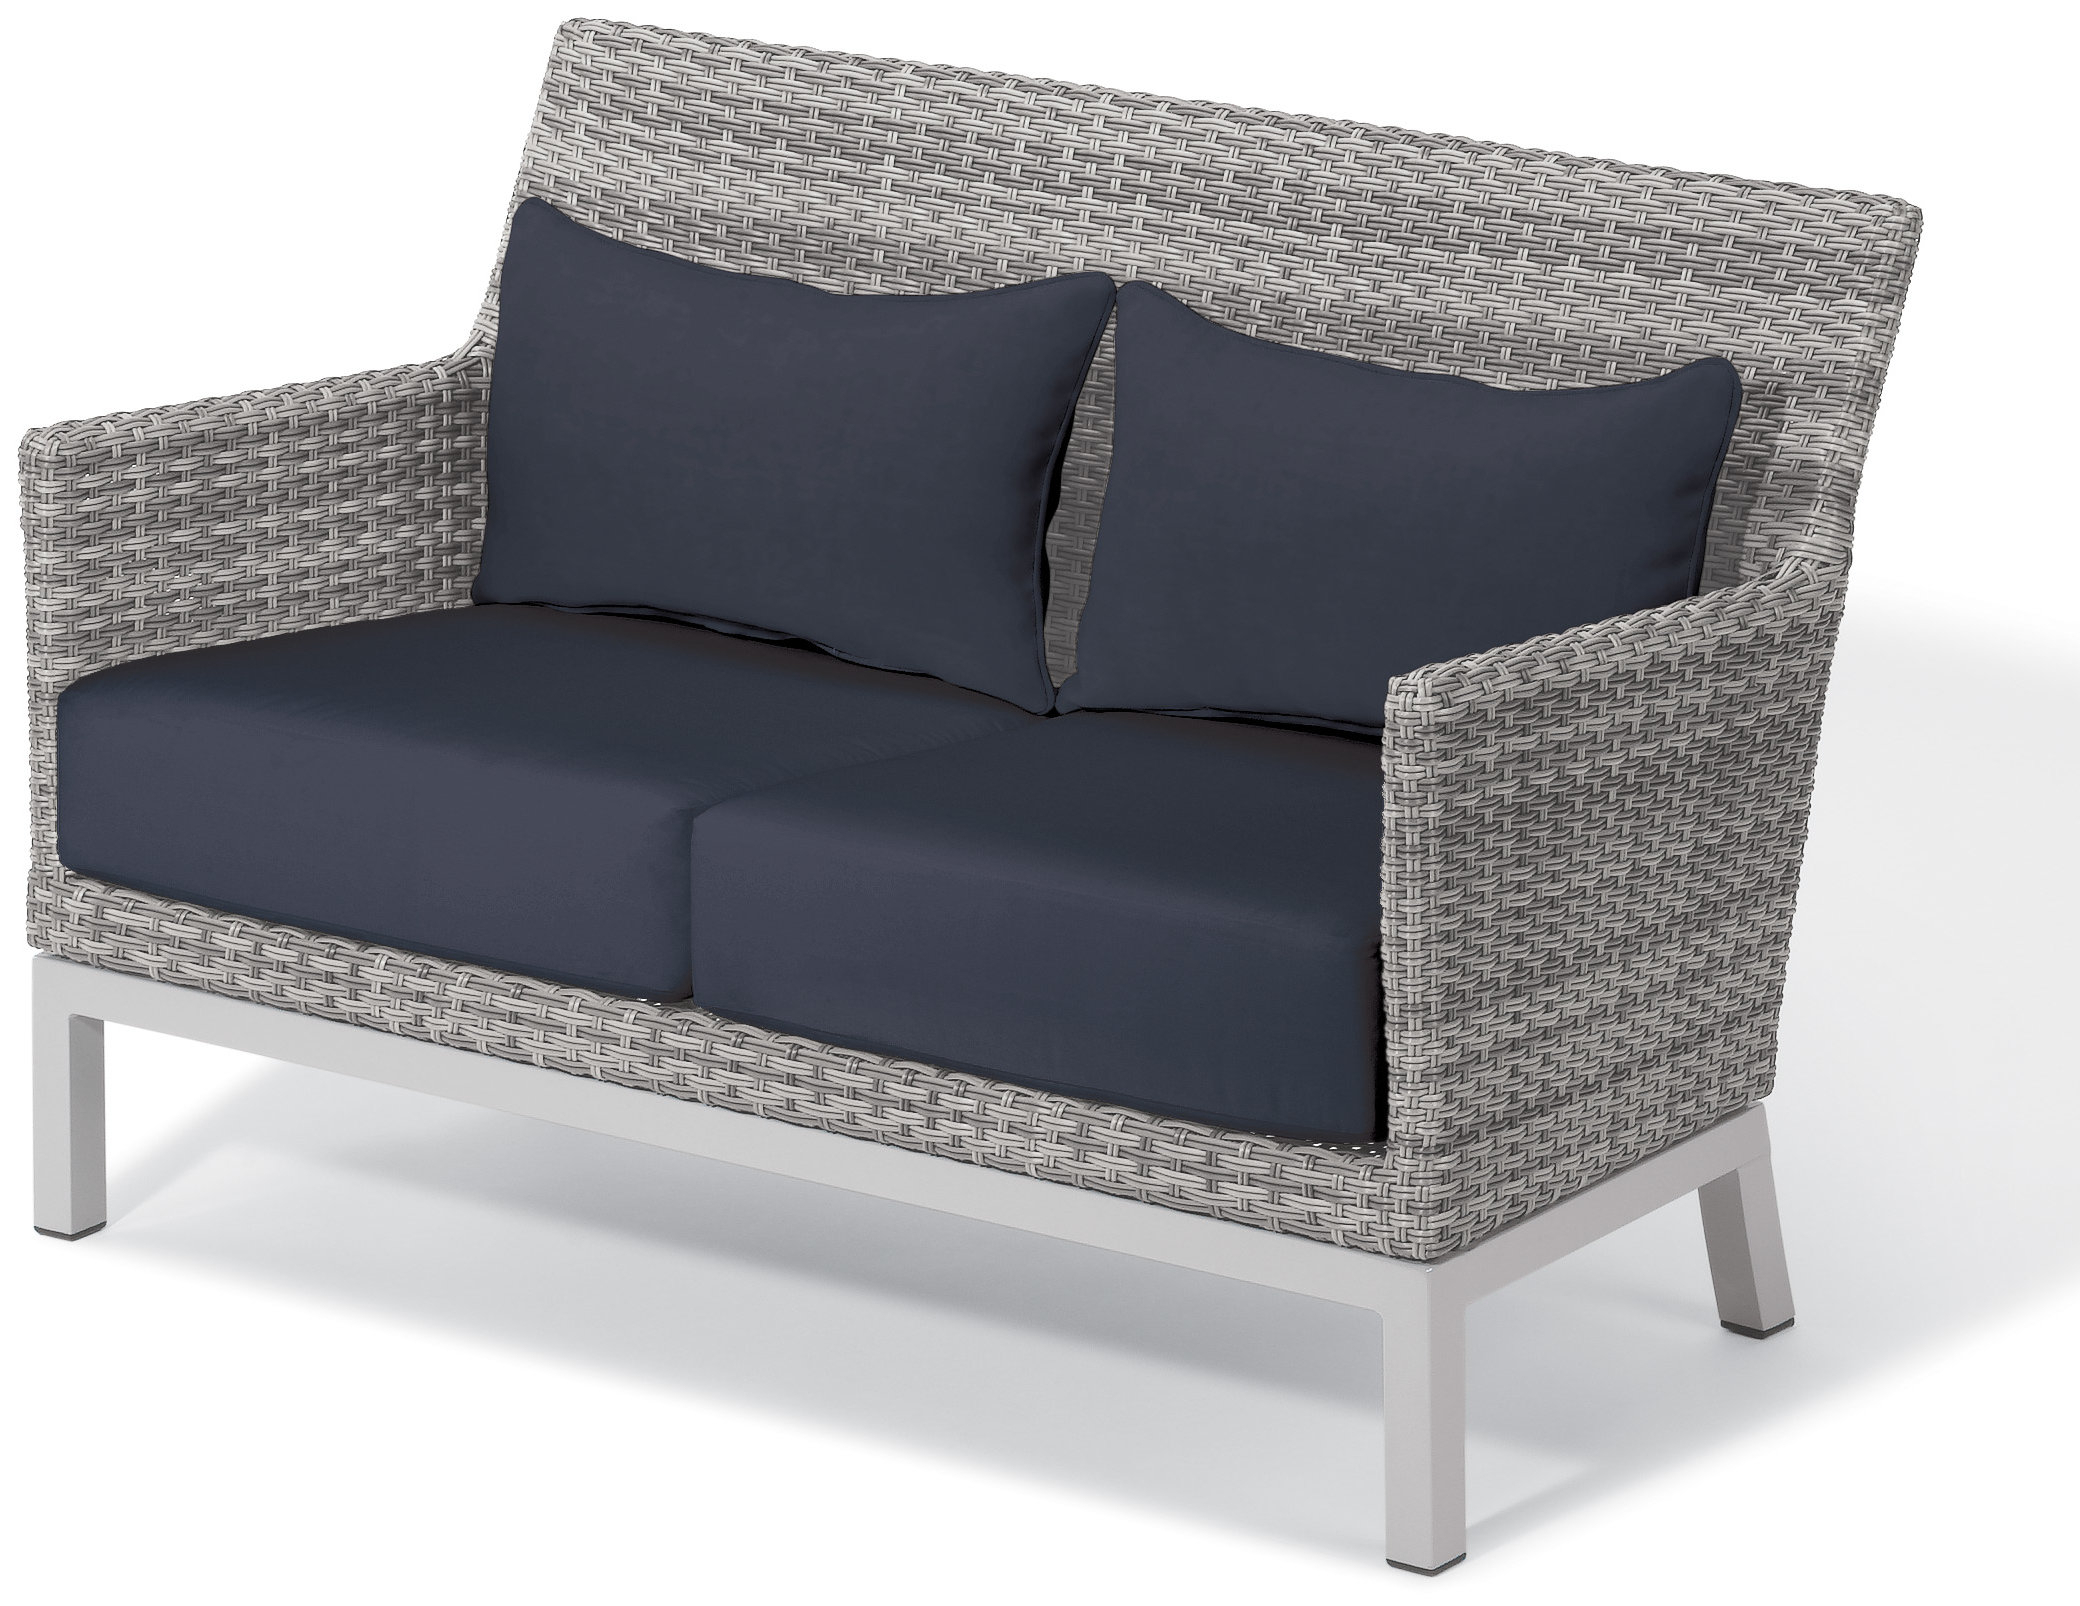 Saleem Loveseat With Cushions Regarding Widely Used Castelli Loveseats With Cushions (View 17 of 20)